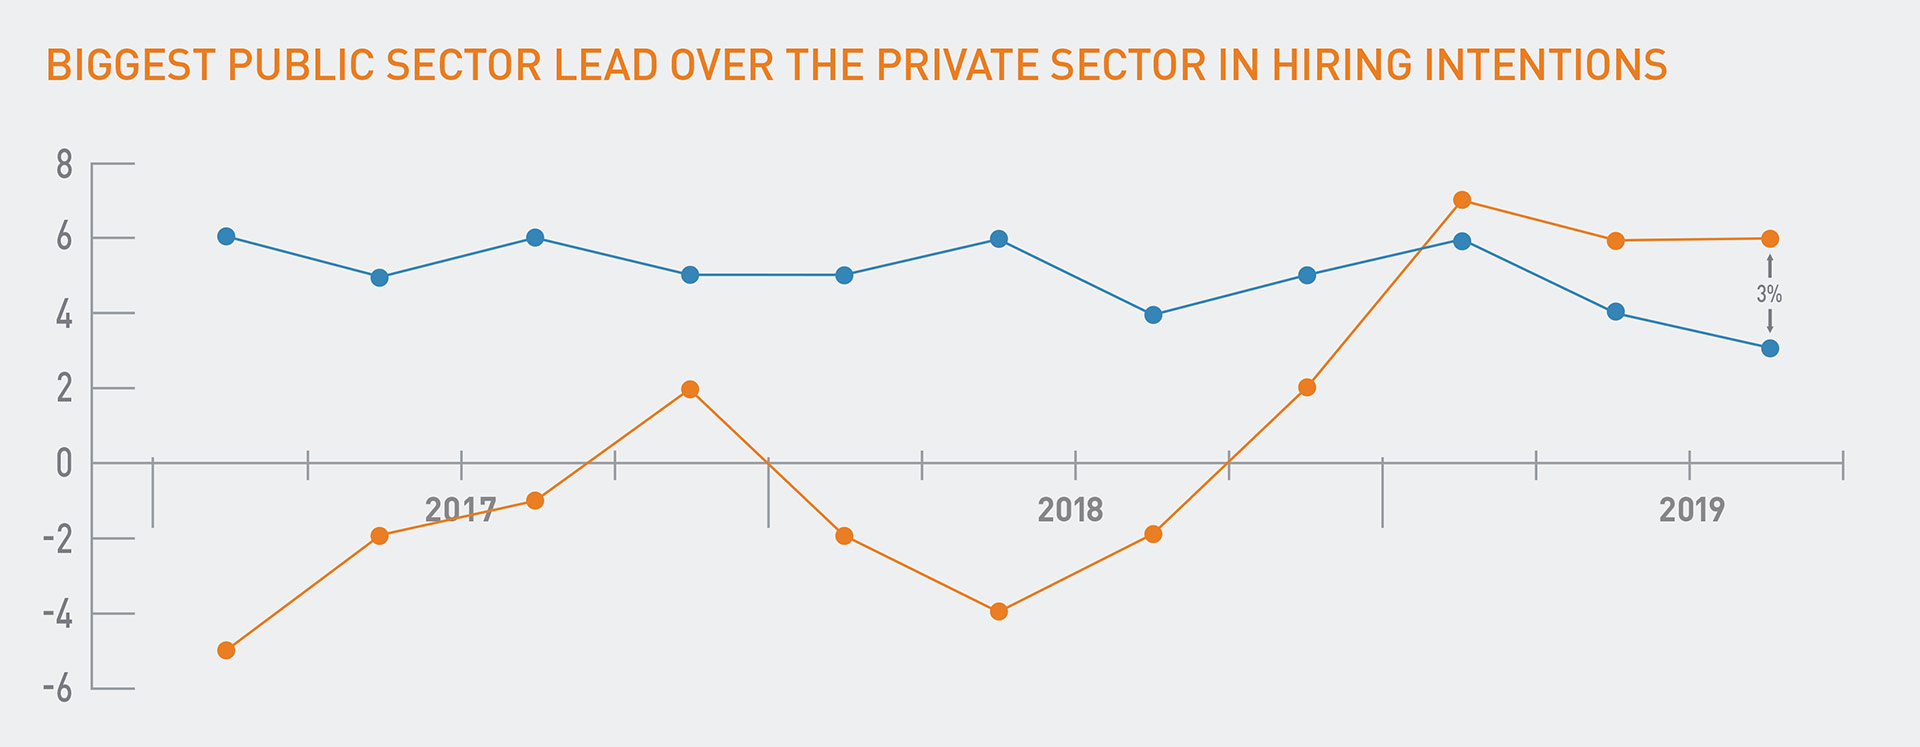 Biggest Public Sector Lead Over the Private Sector in Hiring Intentions